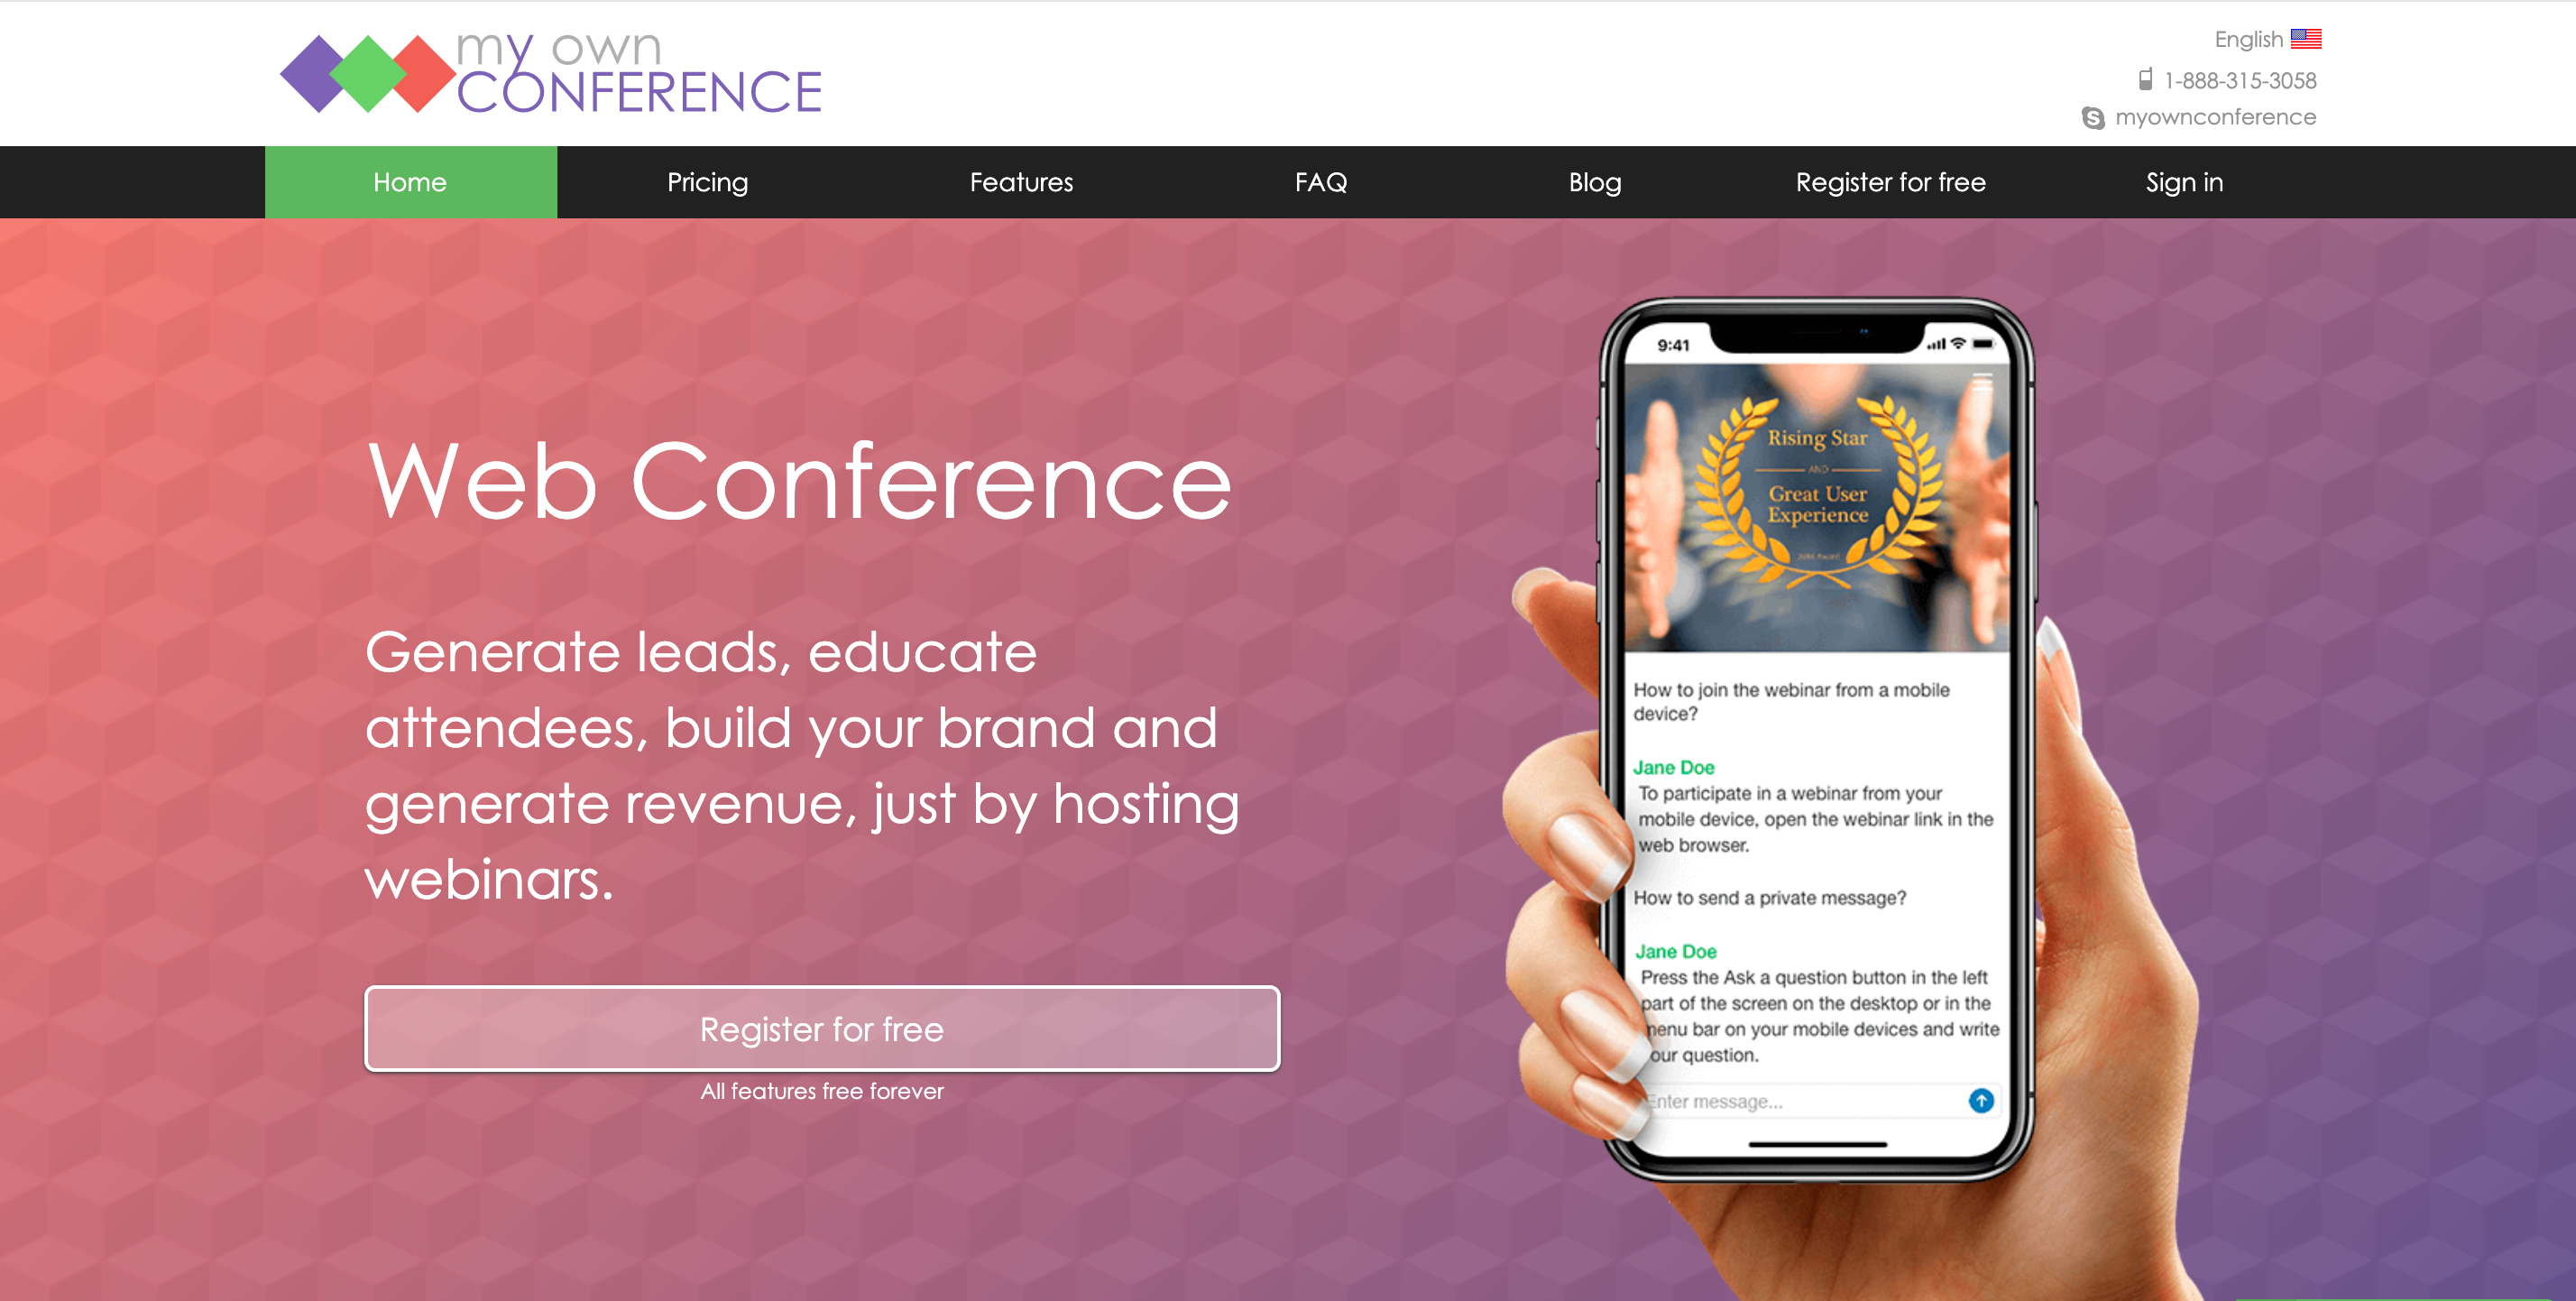 MyOwnConference Review - MyOwn Conference